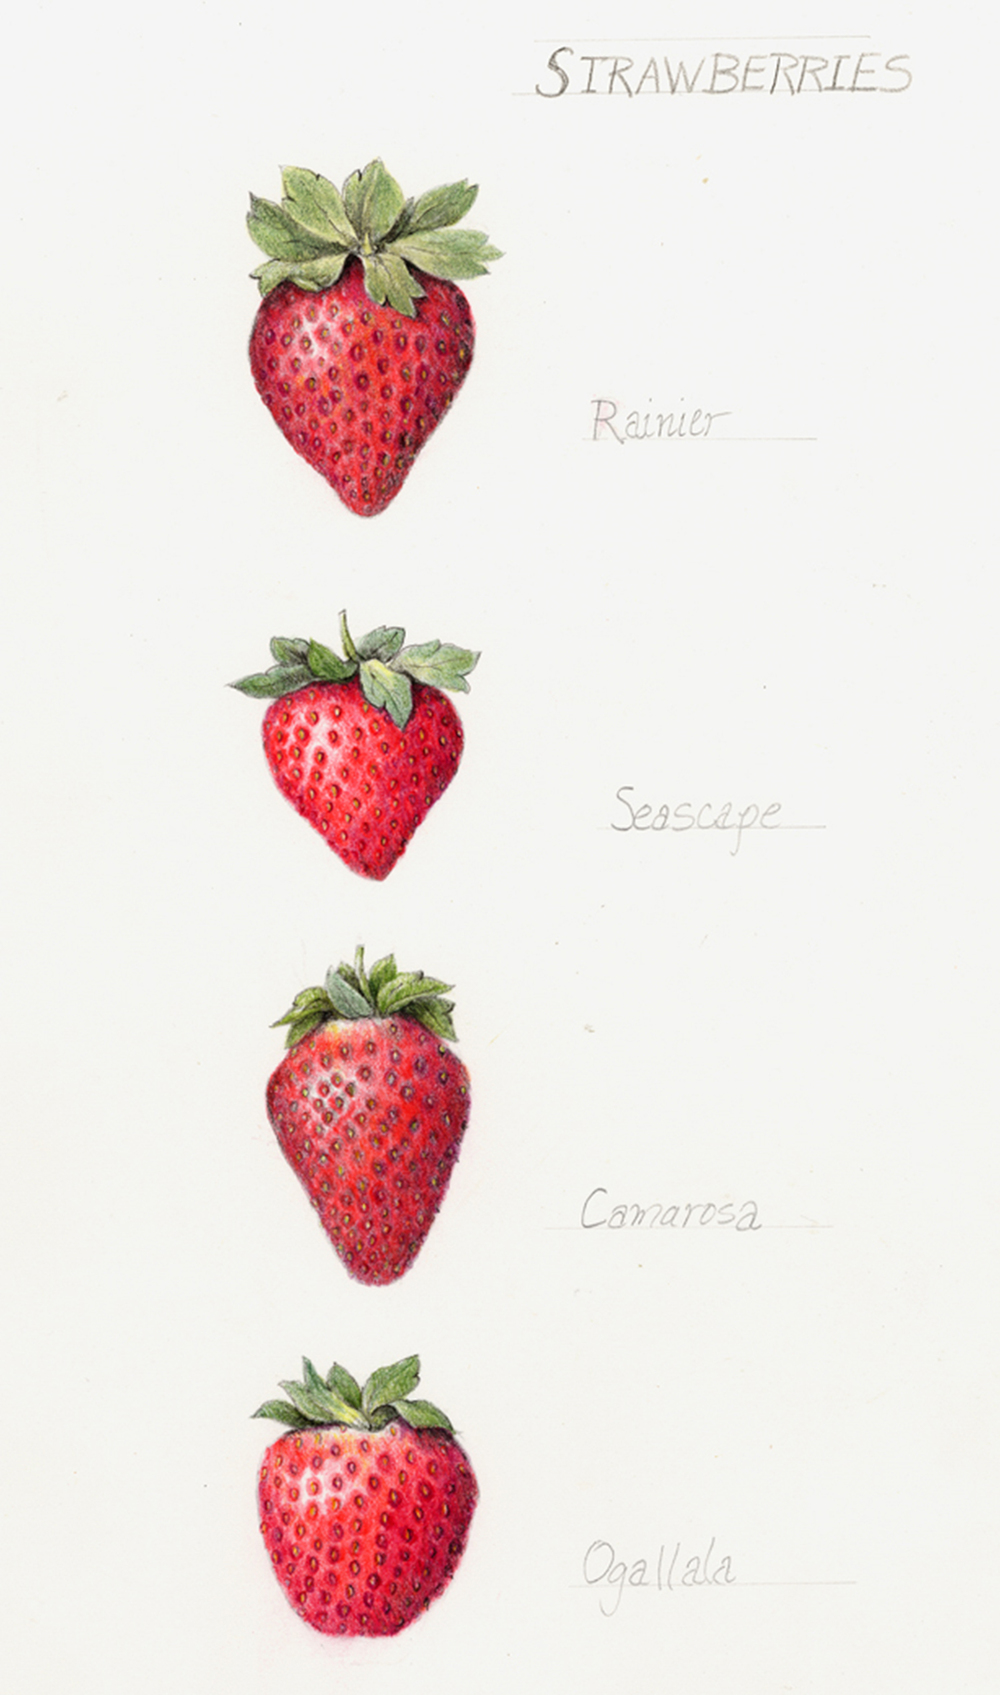 Strawberry - Fragaria ananassa